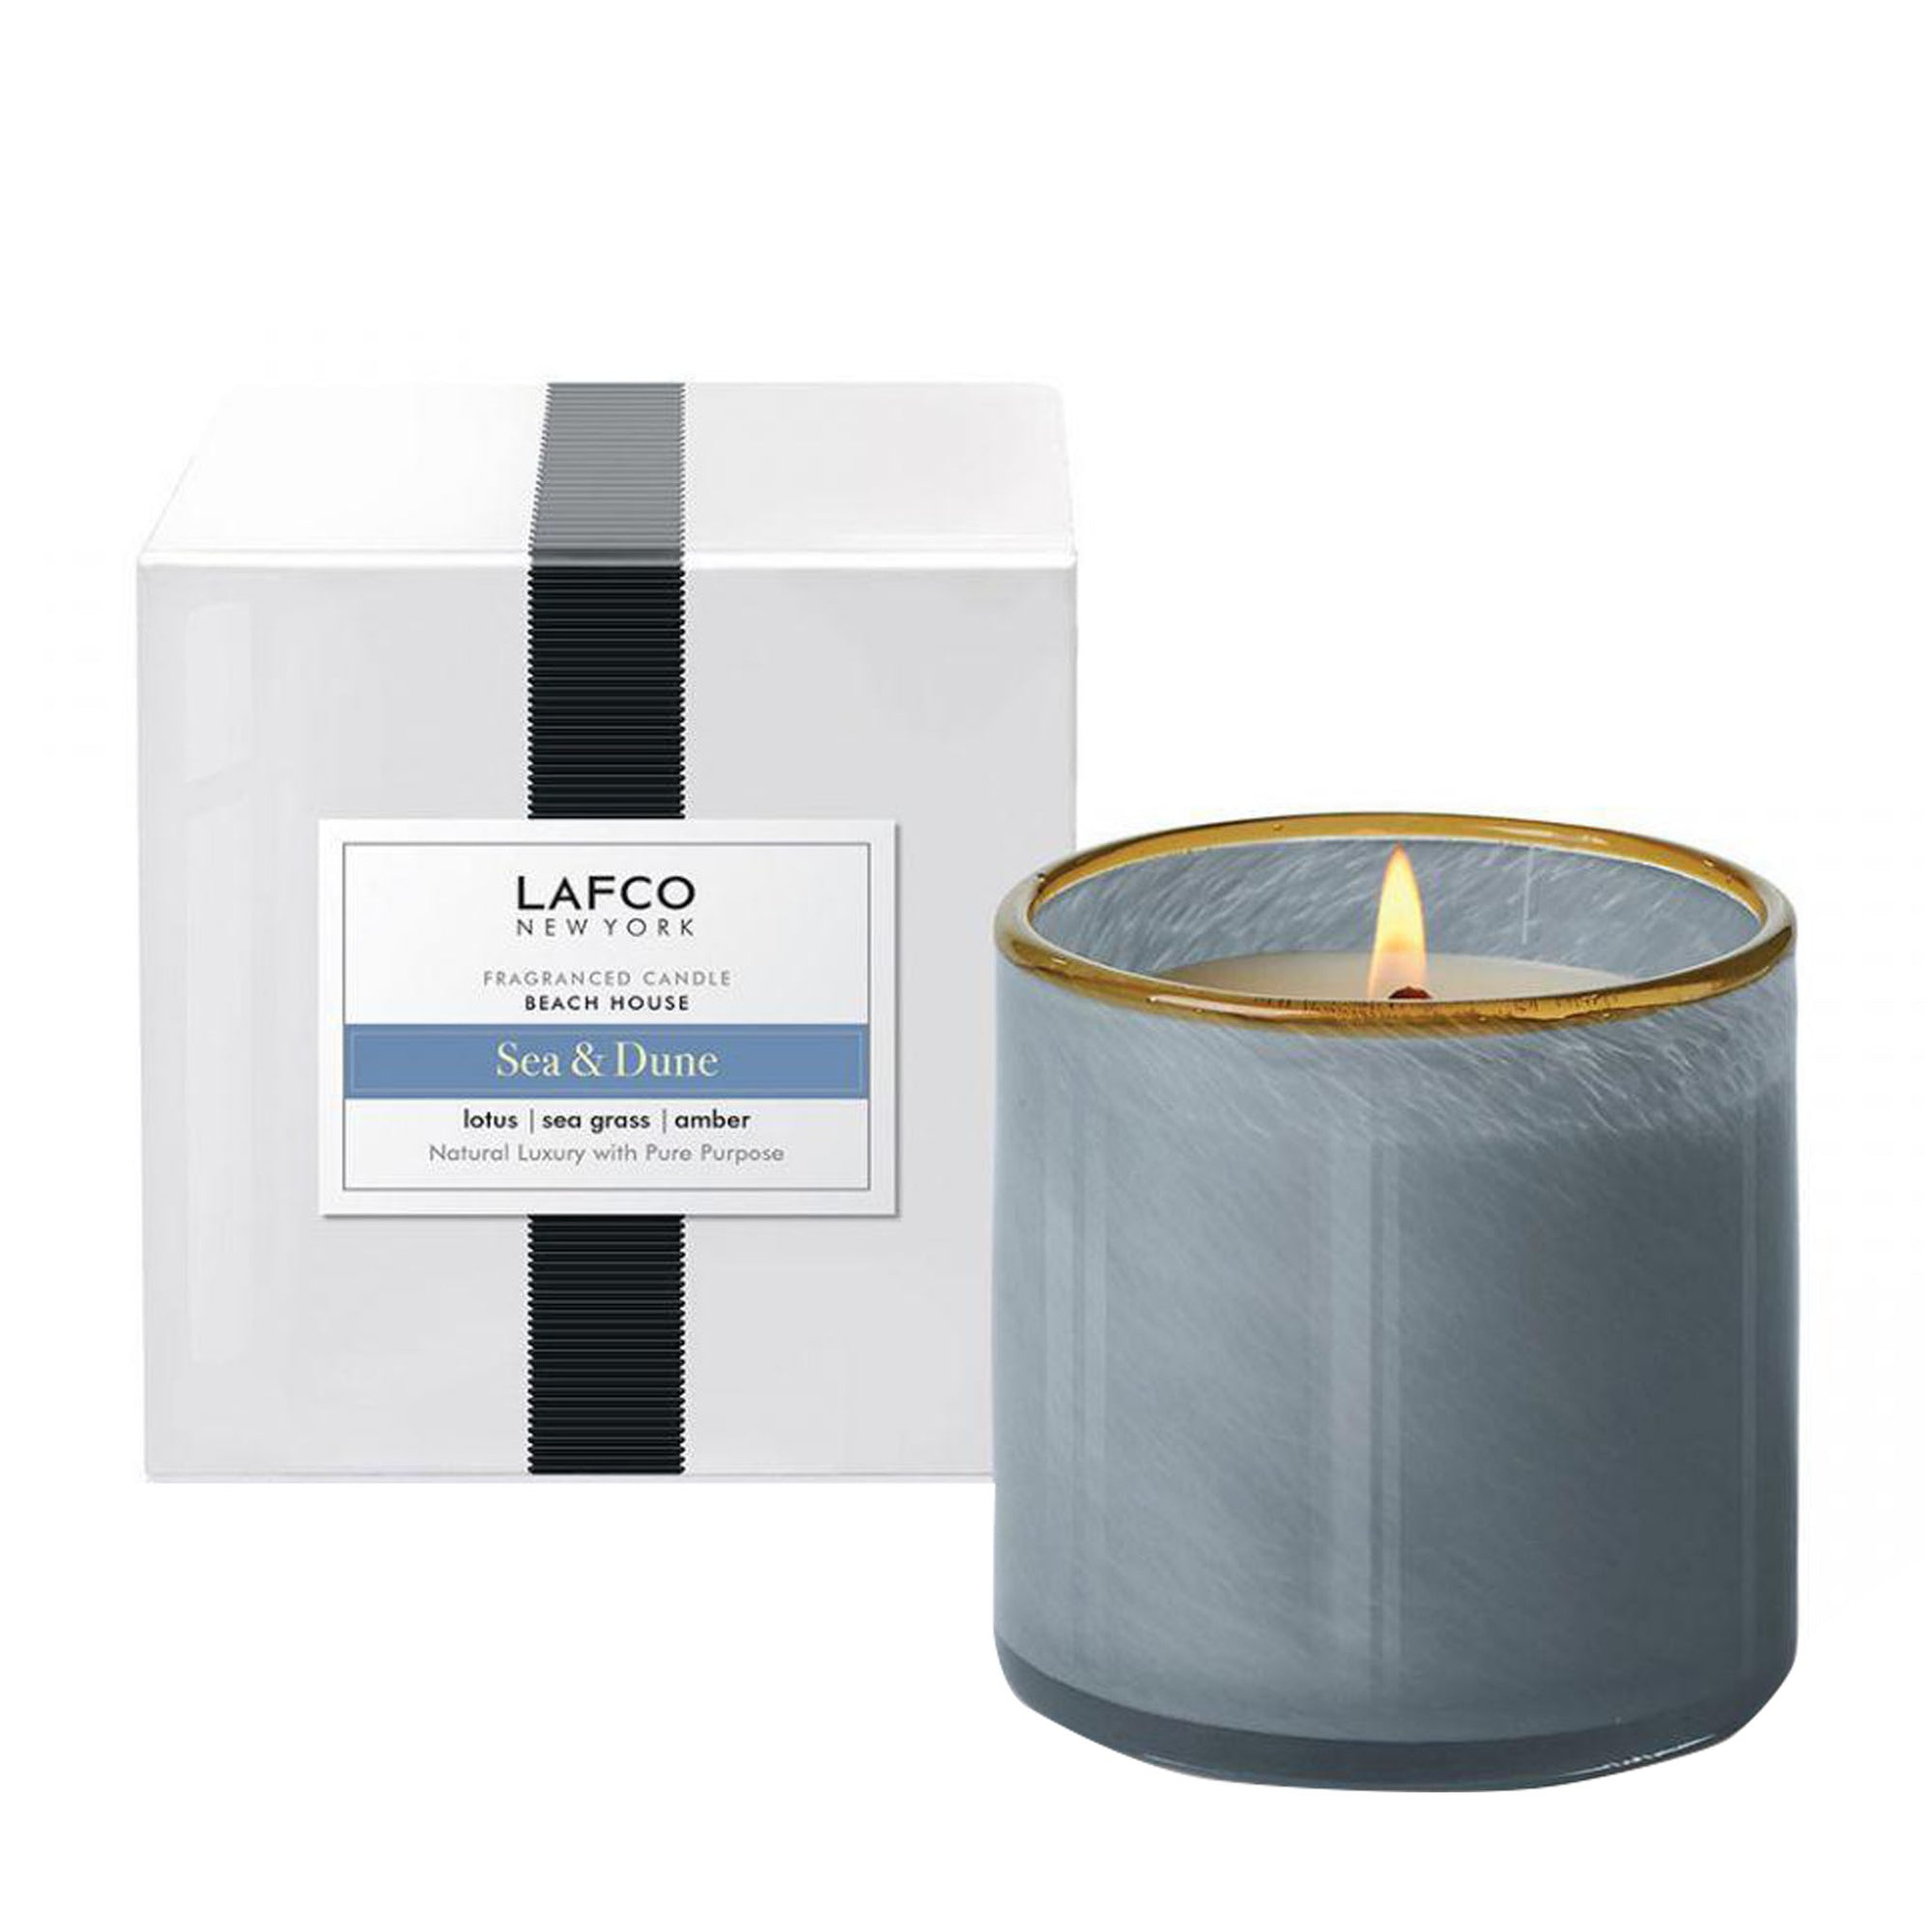 Lafco Beach House | Sea and Dune Candle